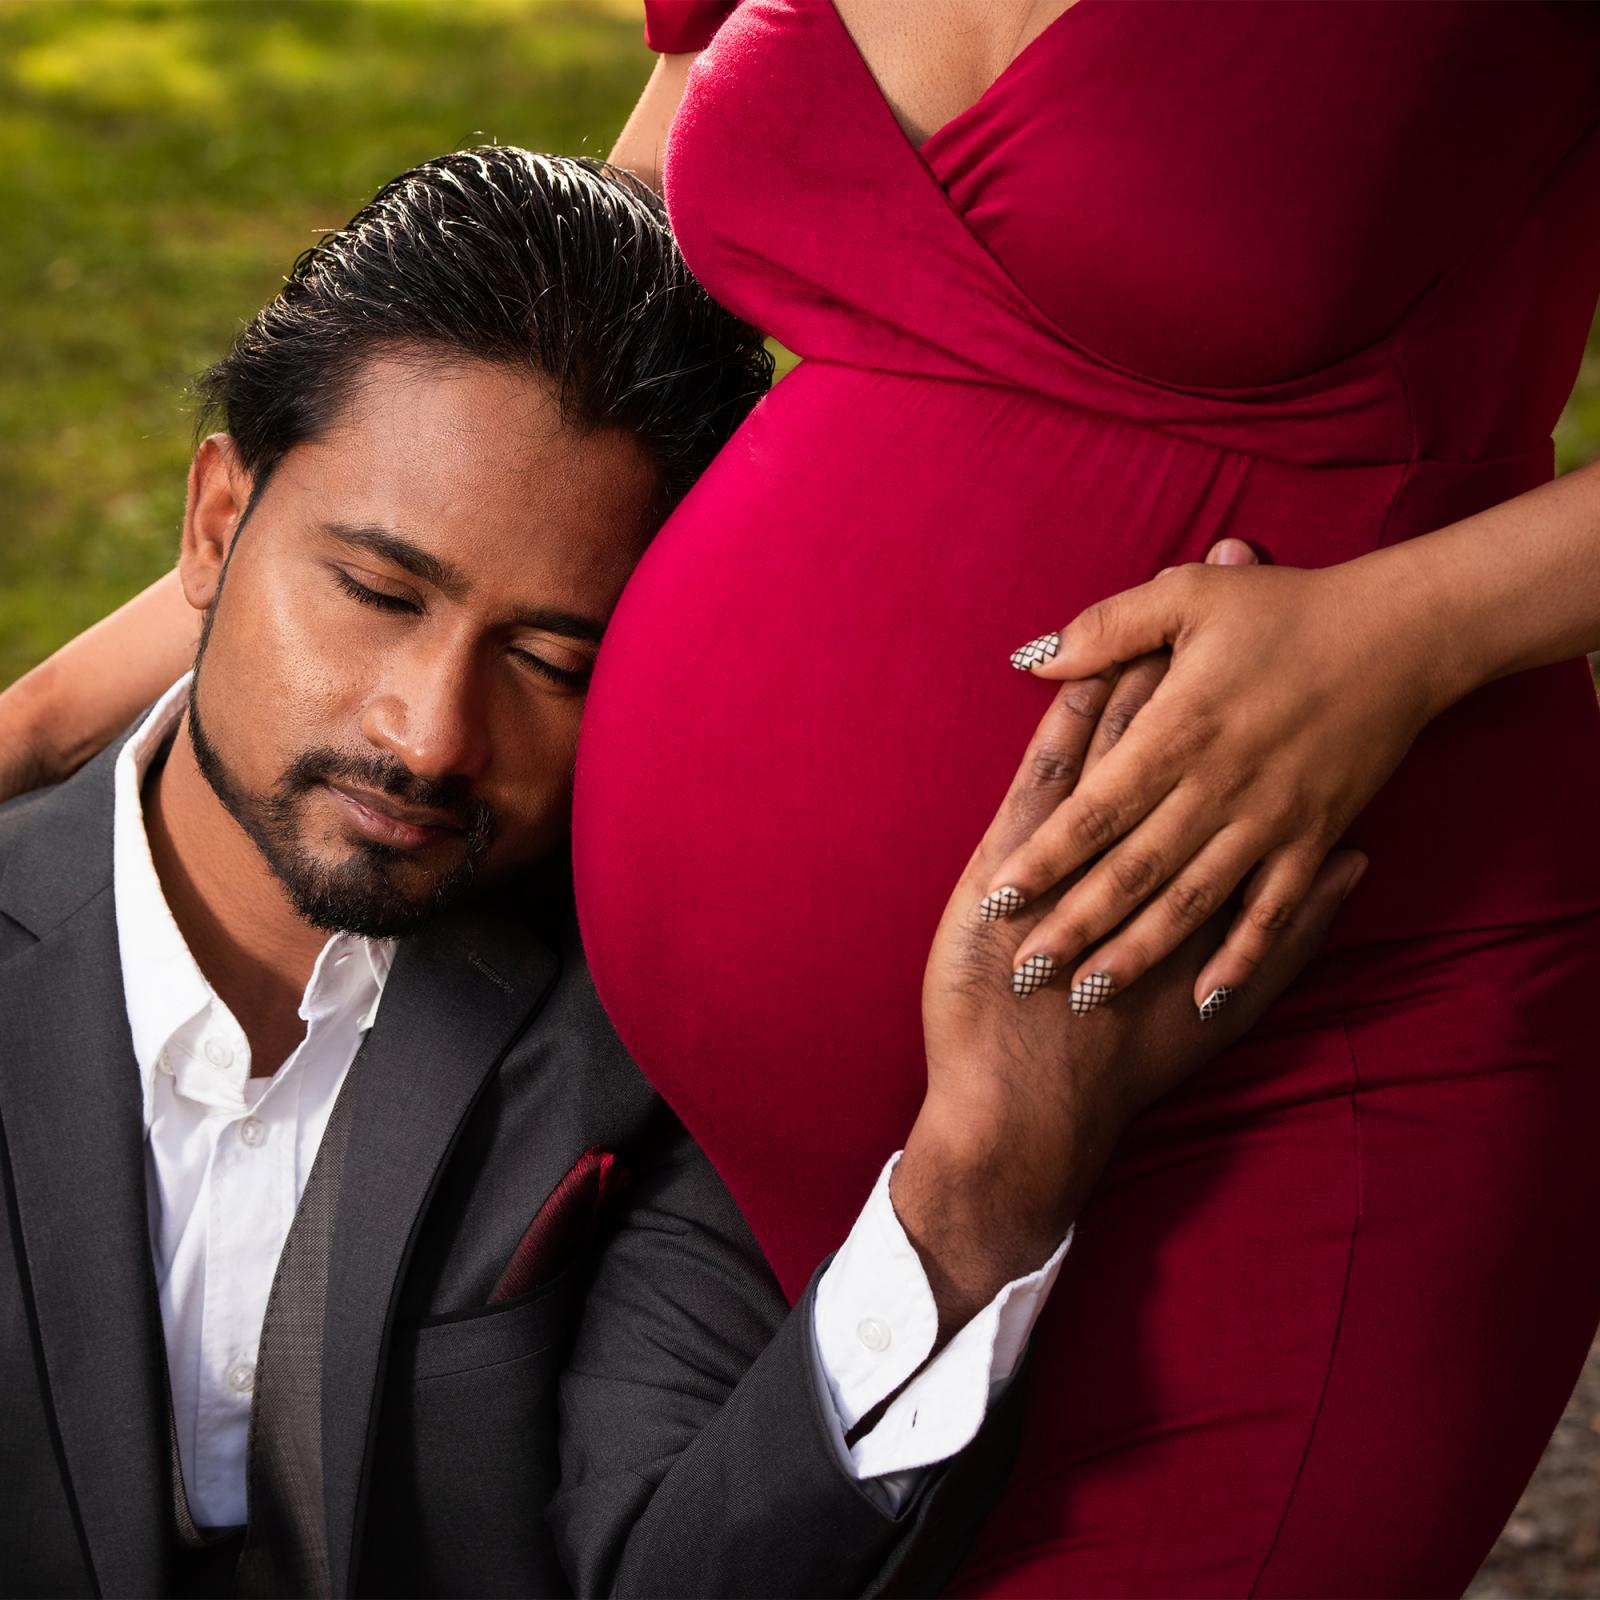 Maternity and pregnancy photography